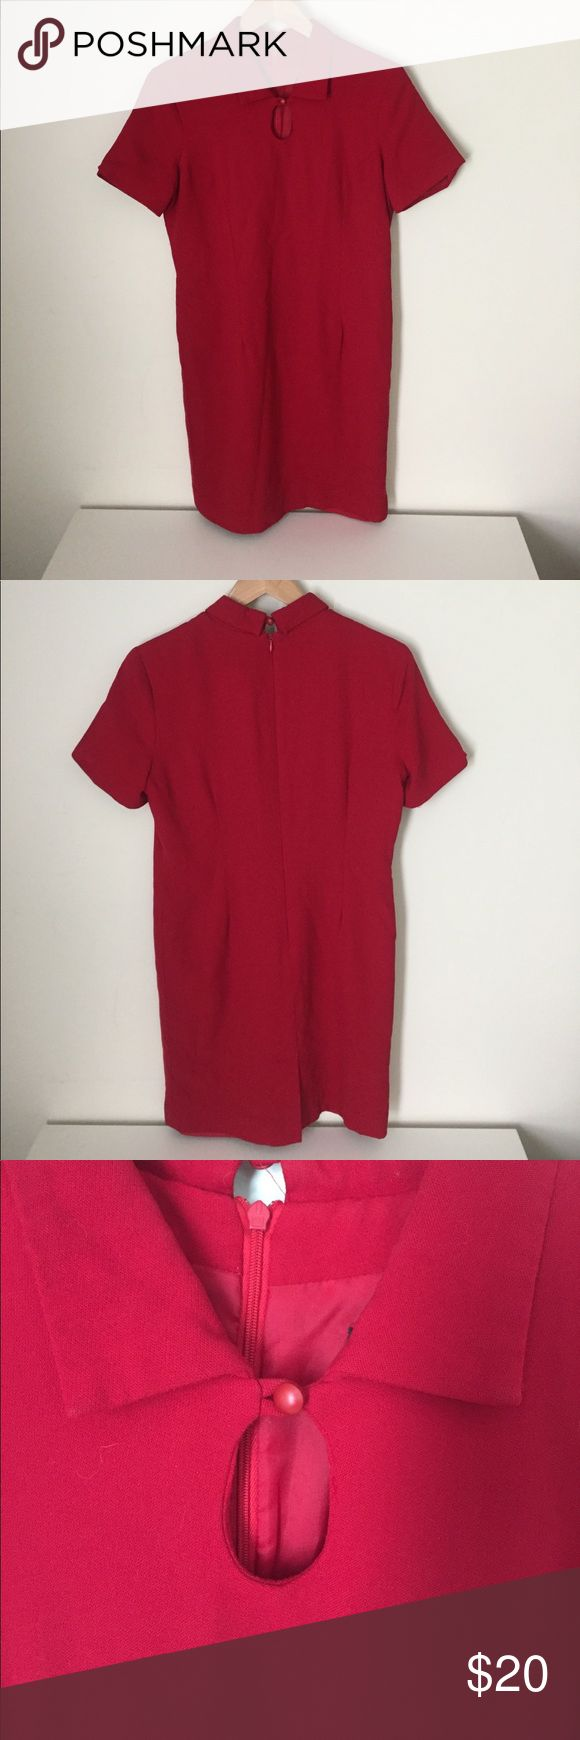 Vintage red dress with keyhole neck Vintage red dress with keyhole neckline. Size is small petite. Polyester, one pick but in good overall condition. Dresses Mini